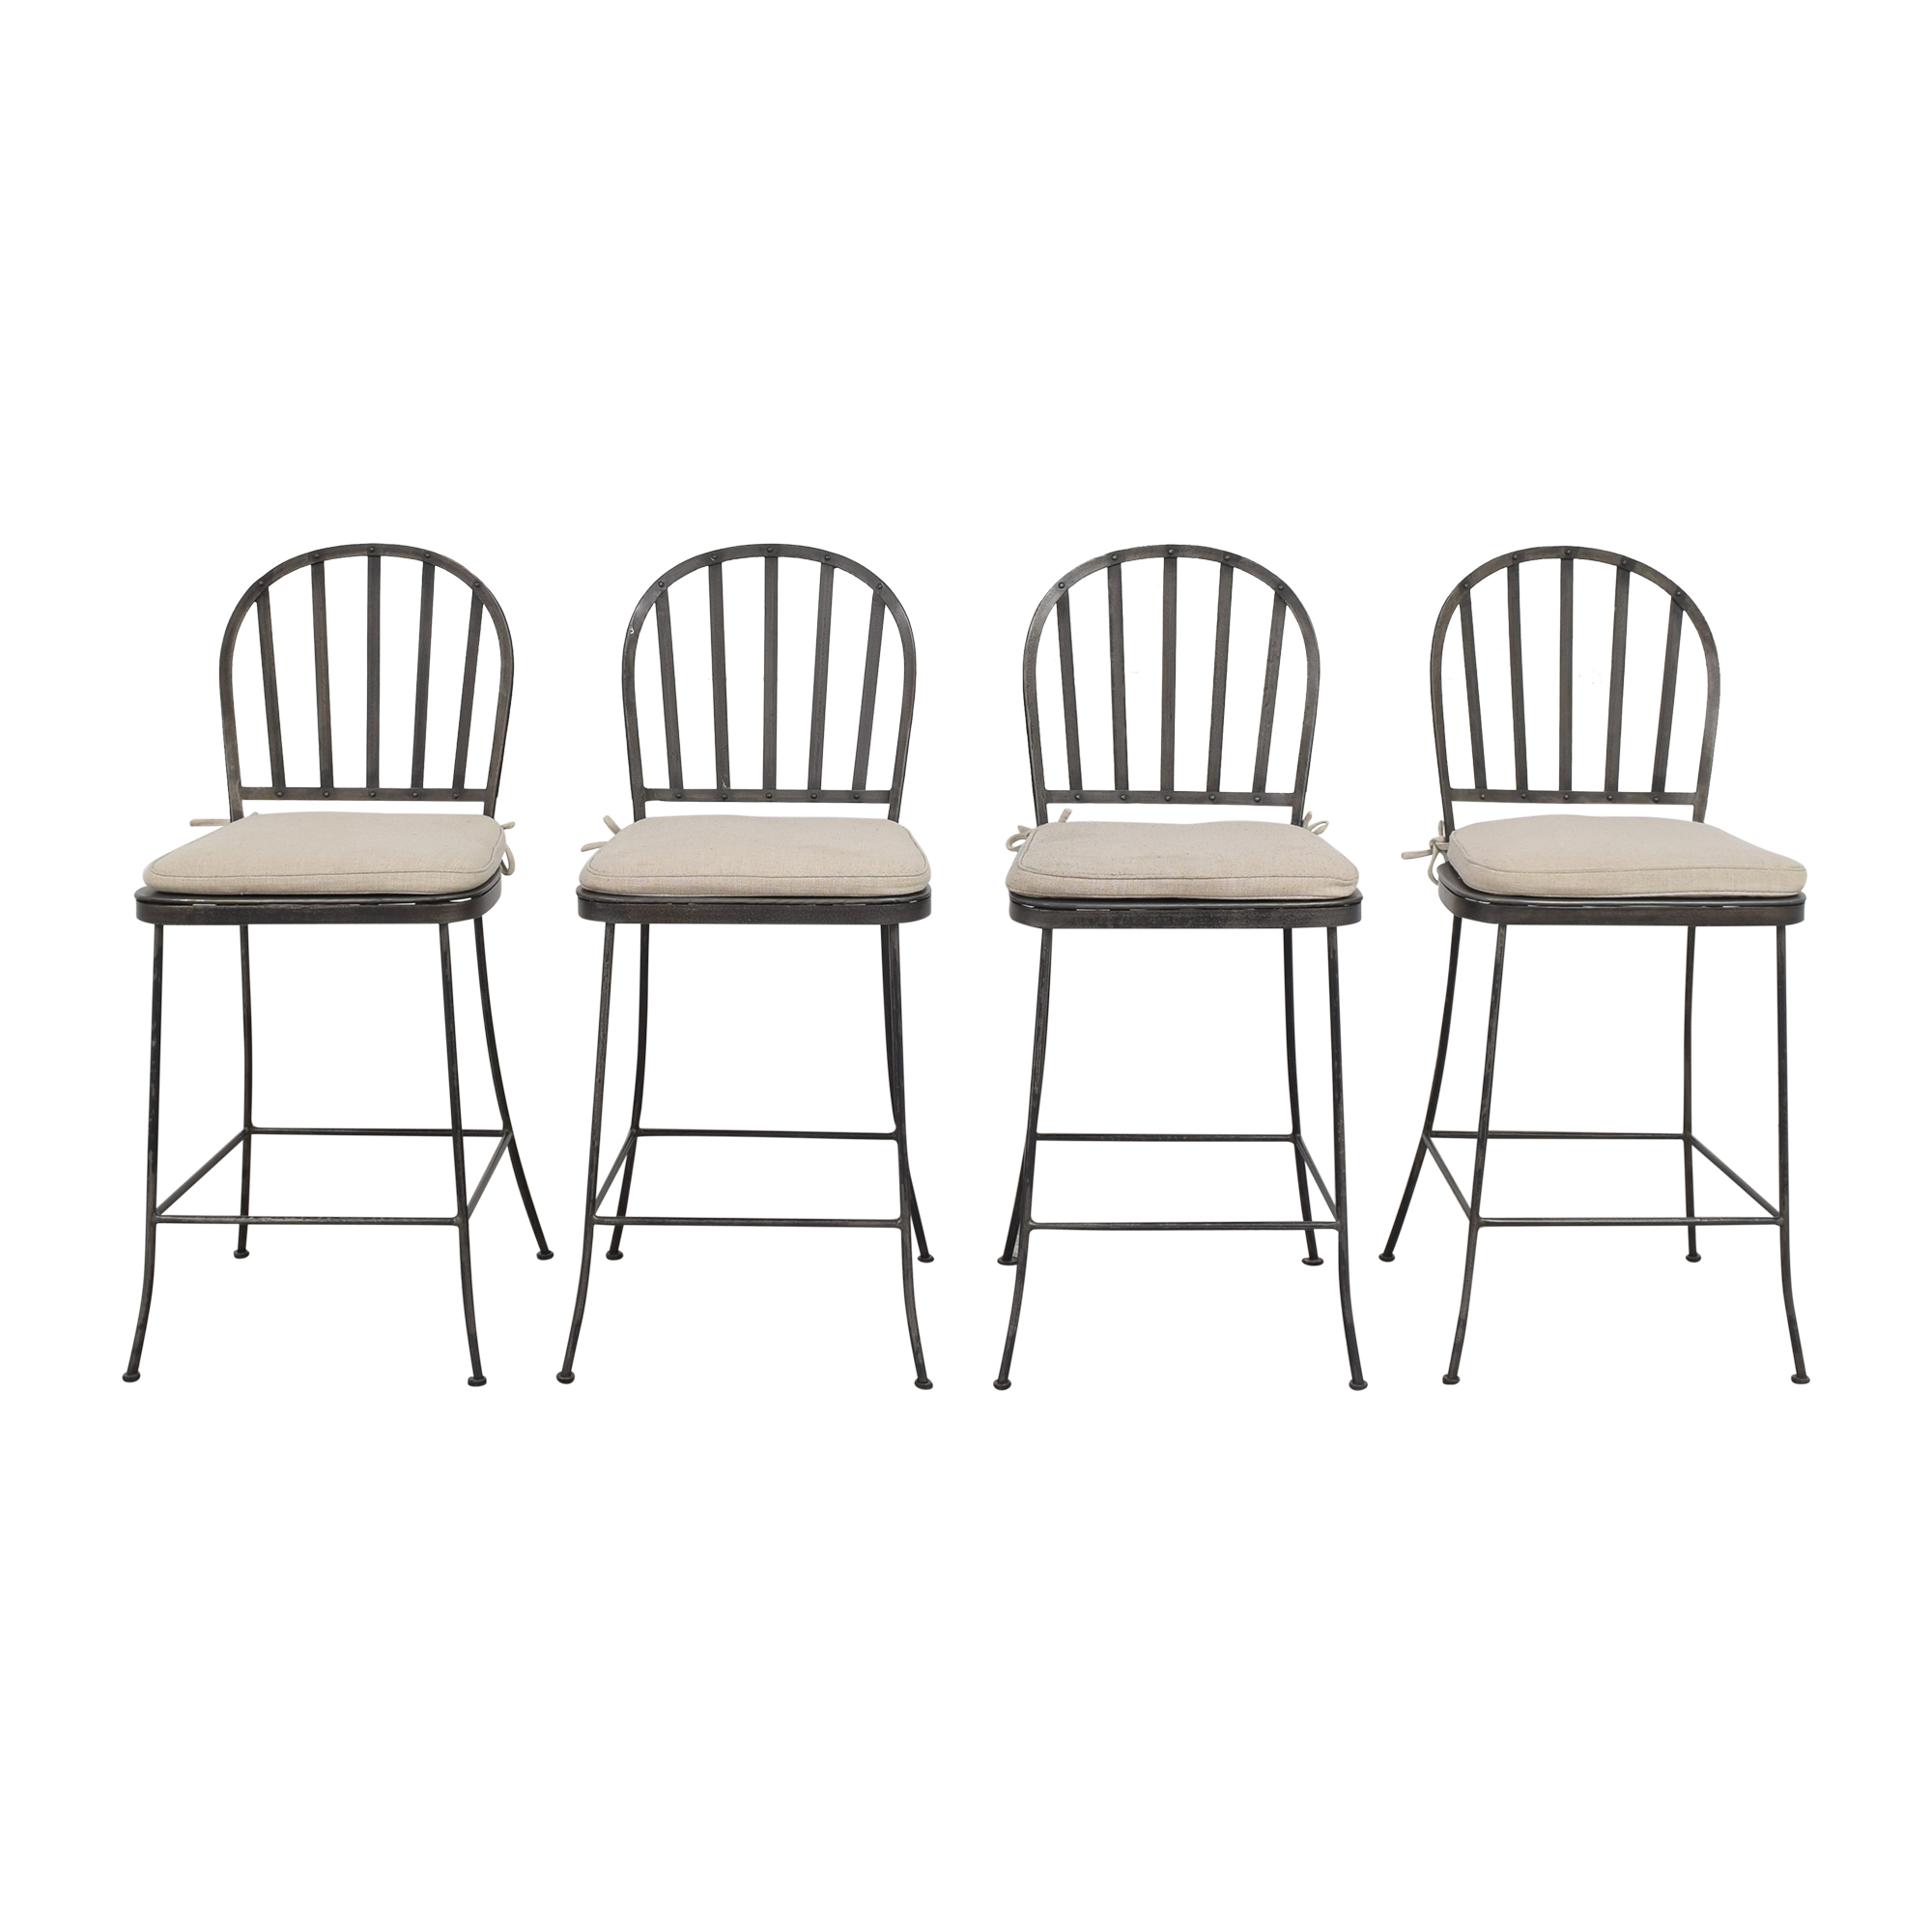 shop Pottery Barn Bar Stools with Cushions Pottery Barn Chairs